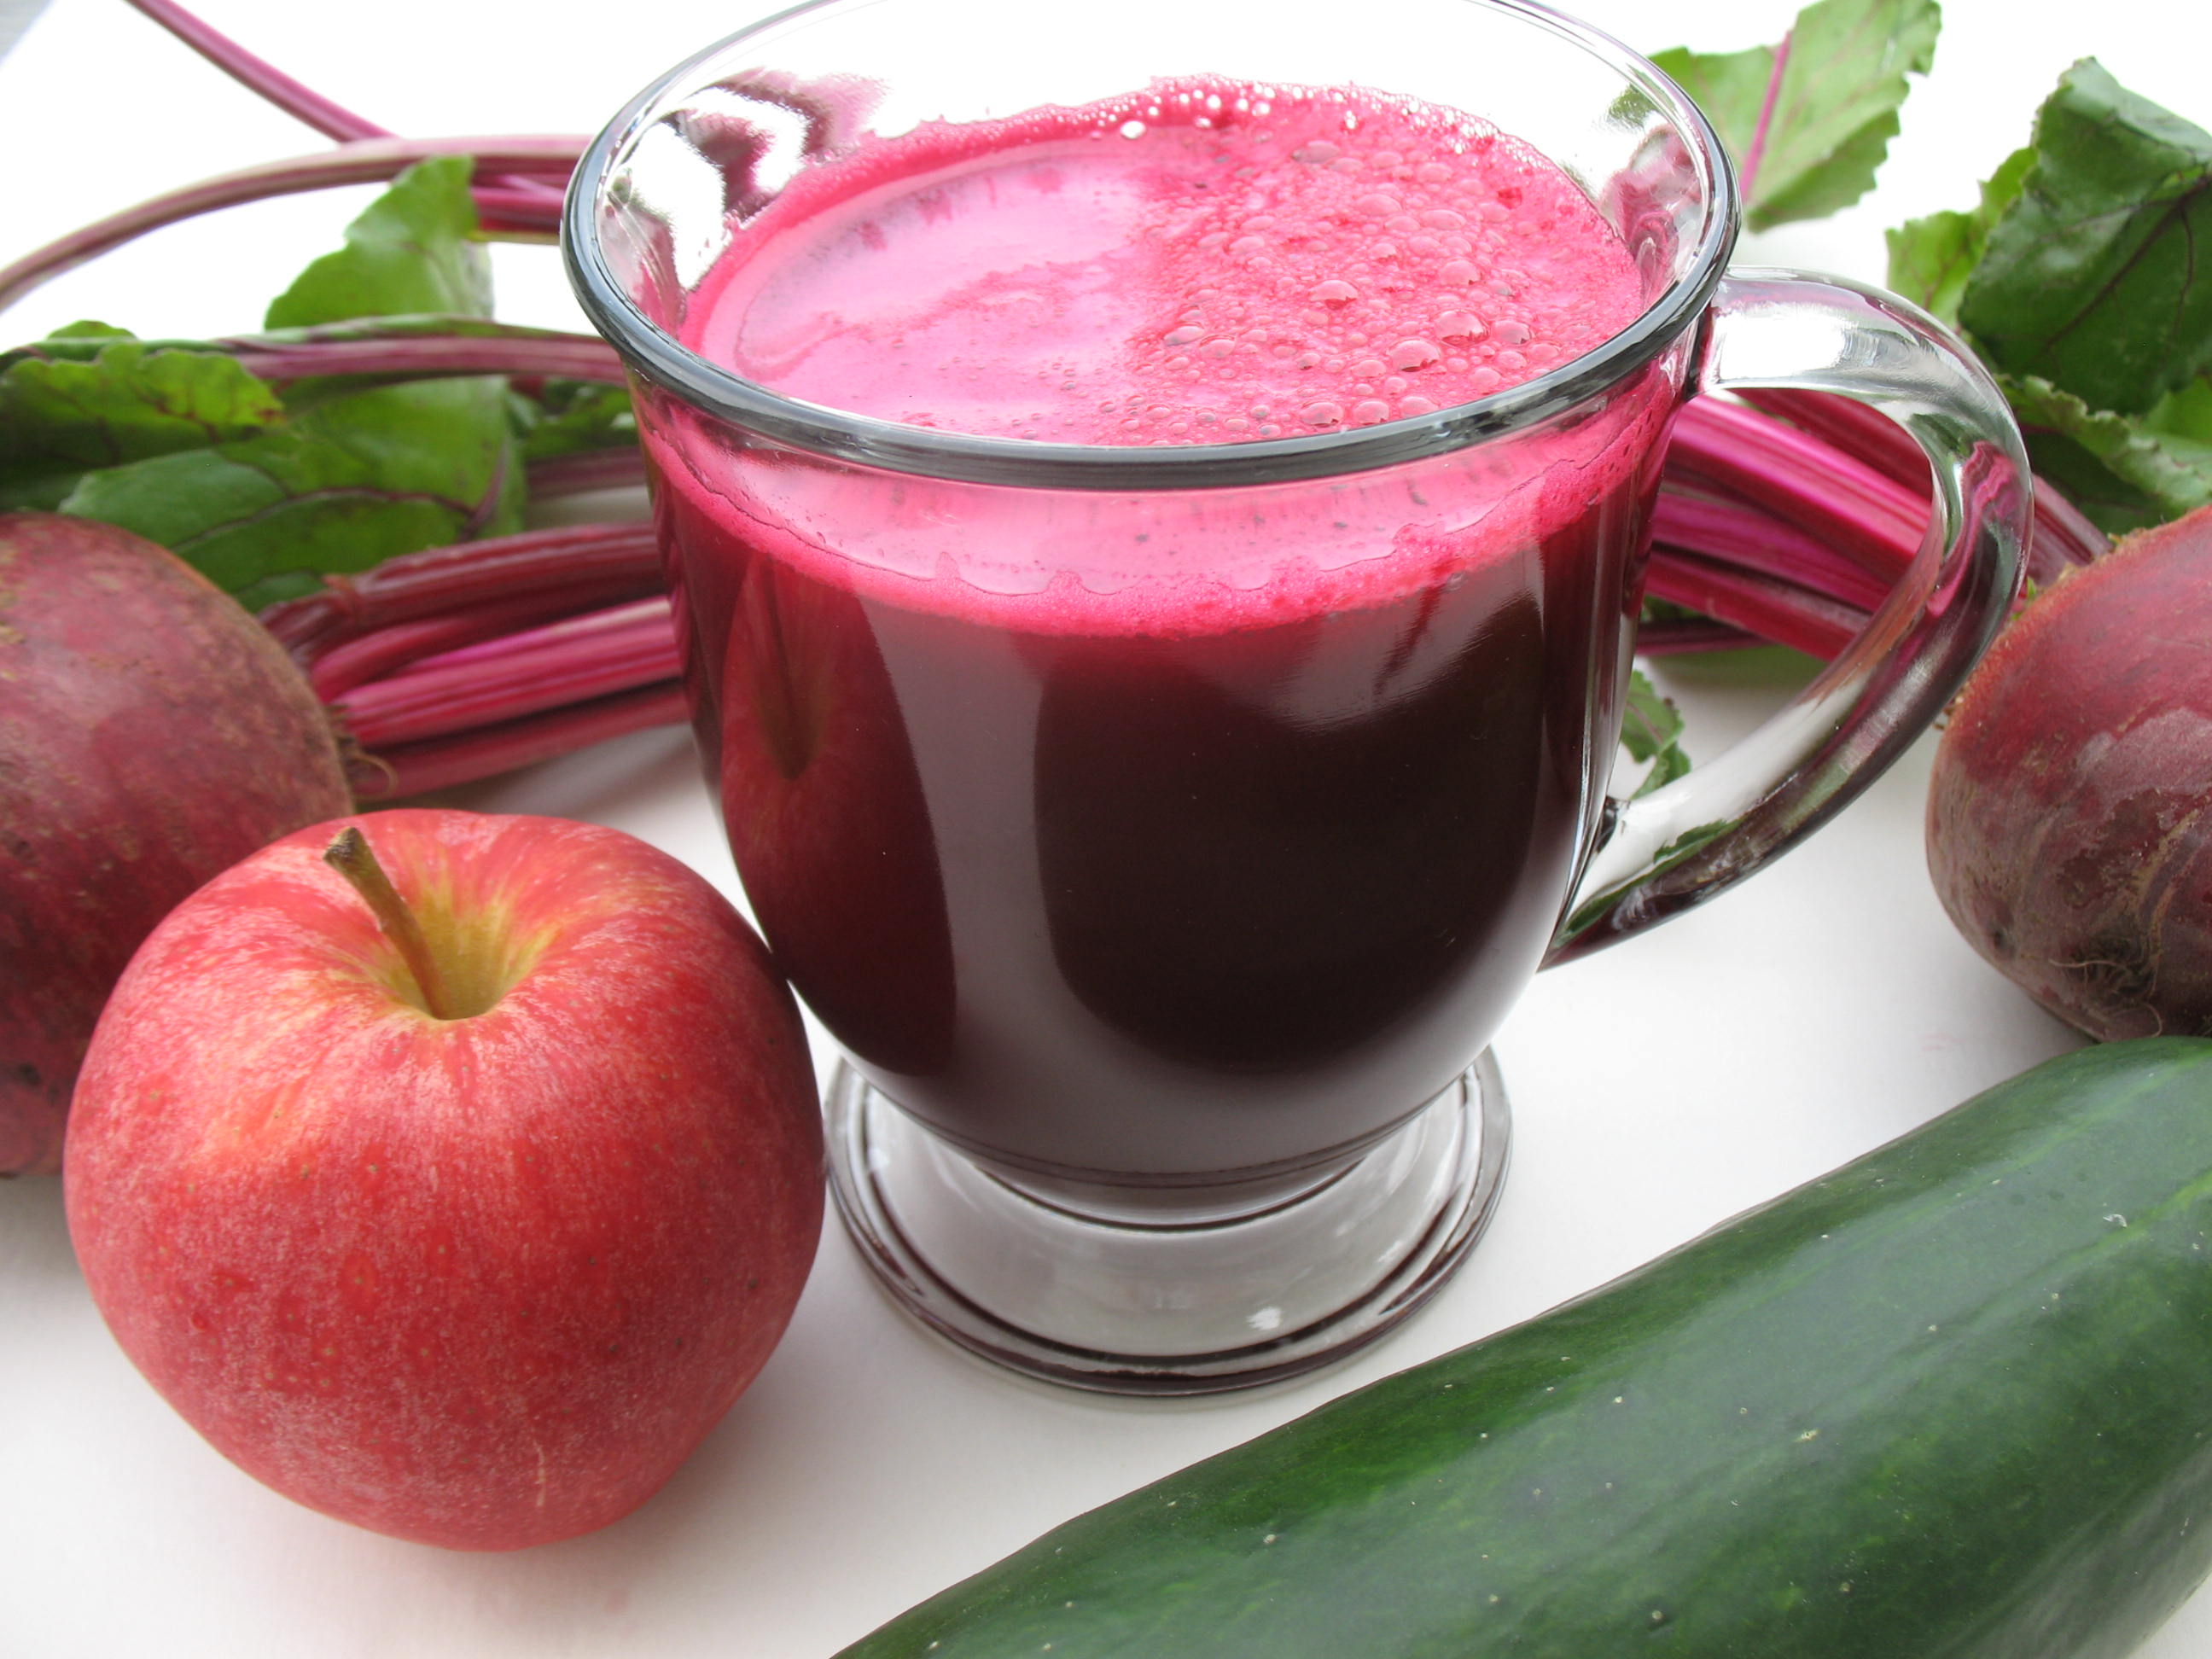 A cool glass of beetroot juice